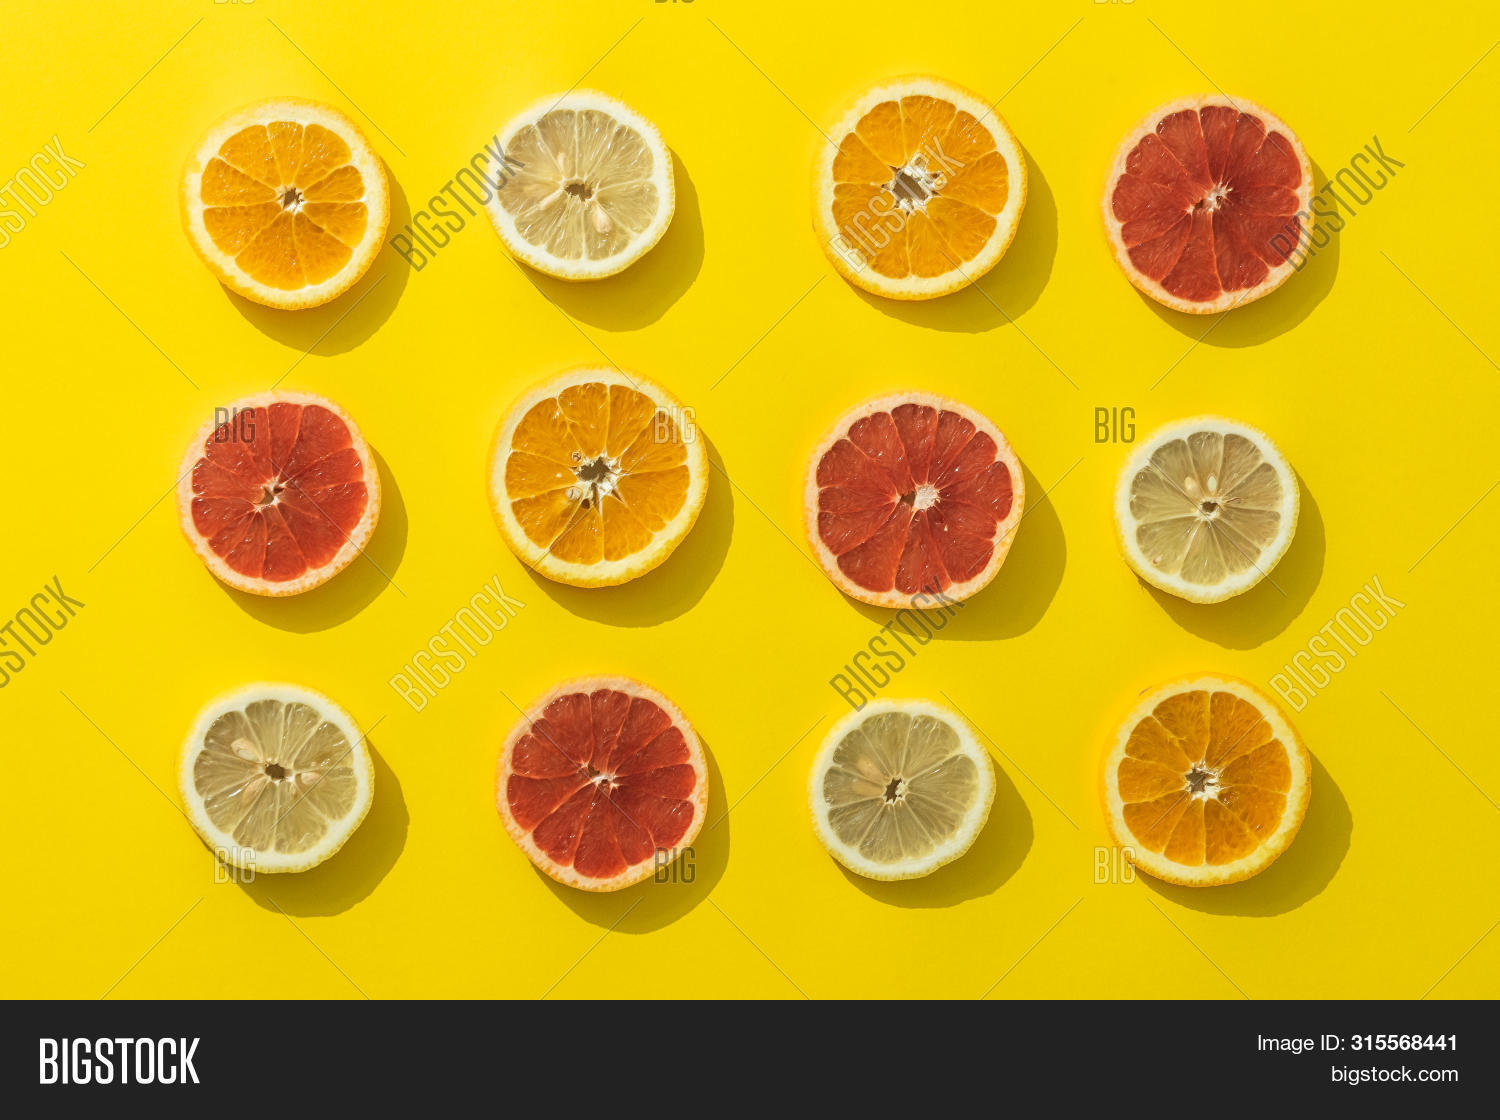 above,background,balance,circle,citrus,citruses,closeup,colorful,copy,creative,creativity,design,detox,detoxification,diet,fancy,flat,food,freshness,fruit,funny,grapefruit,healthy,homemade,ideas,juicy,lay,lemon,lifestyles,macro,orange,organic,photography,preparation,raw,red,refreshing,seasonal,serving,slice,space,studio,summer,symmetric,tasty,vegan,vegetarian,vibrant,vitamins,yellow